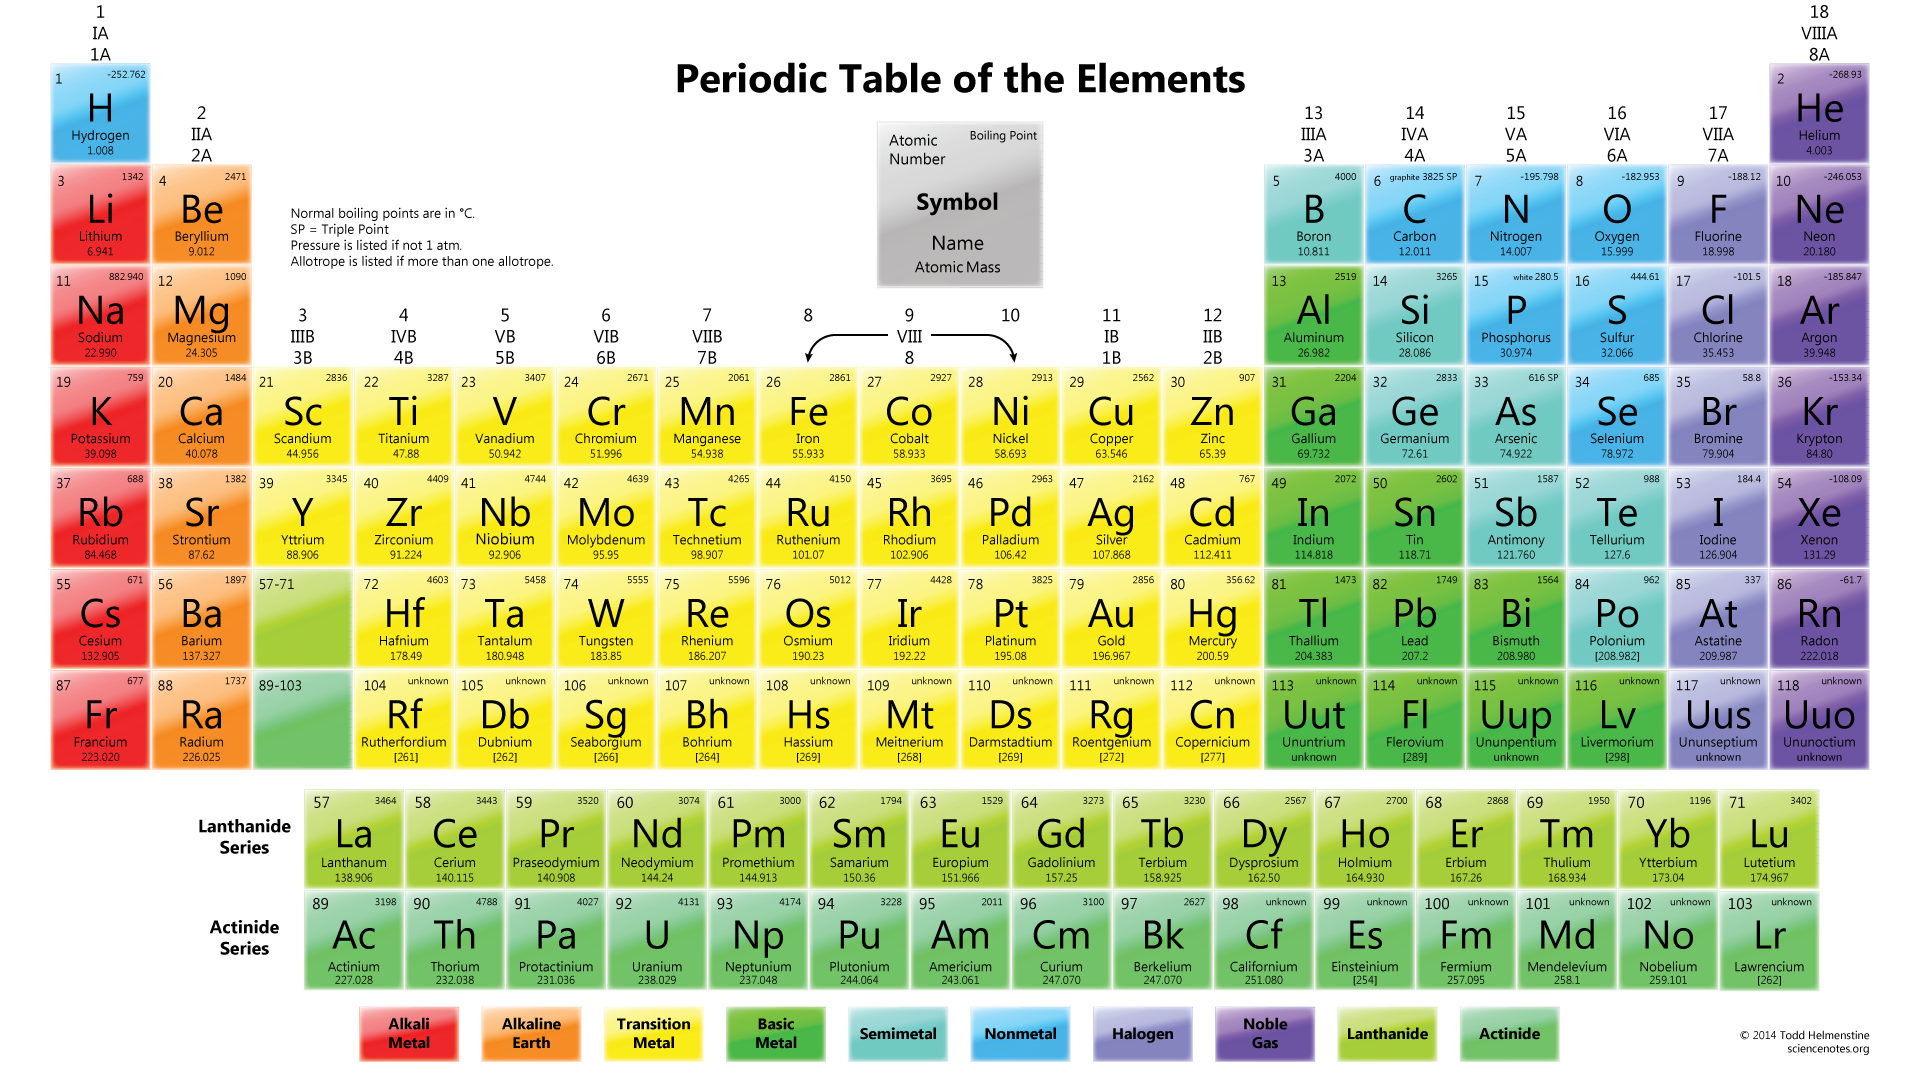 Printable periodic tables for chemistry science notes and projects color periodic table of the elements with boiling points urtaz Image collections